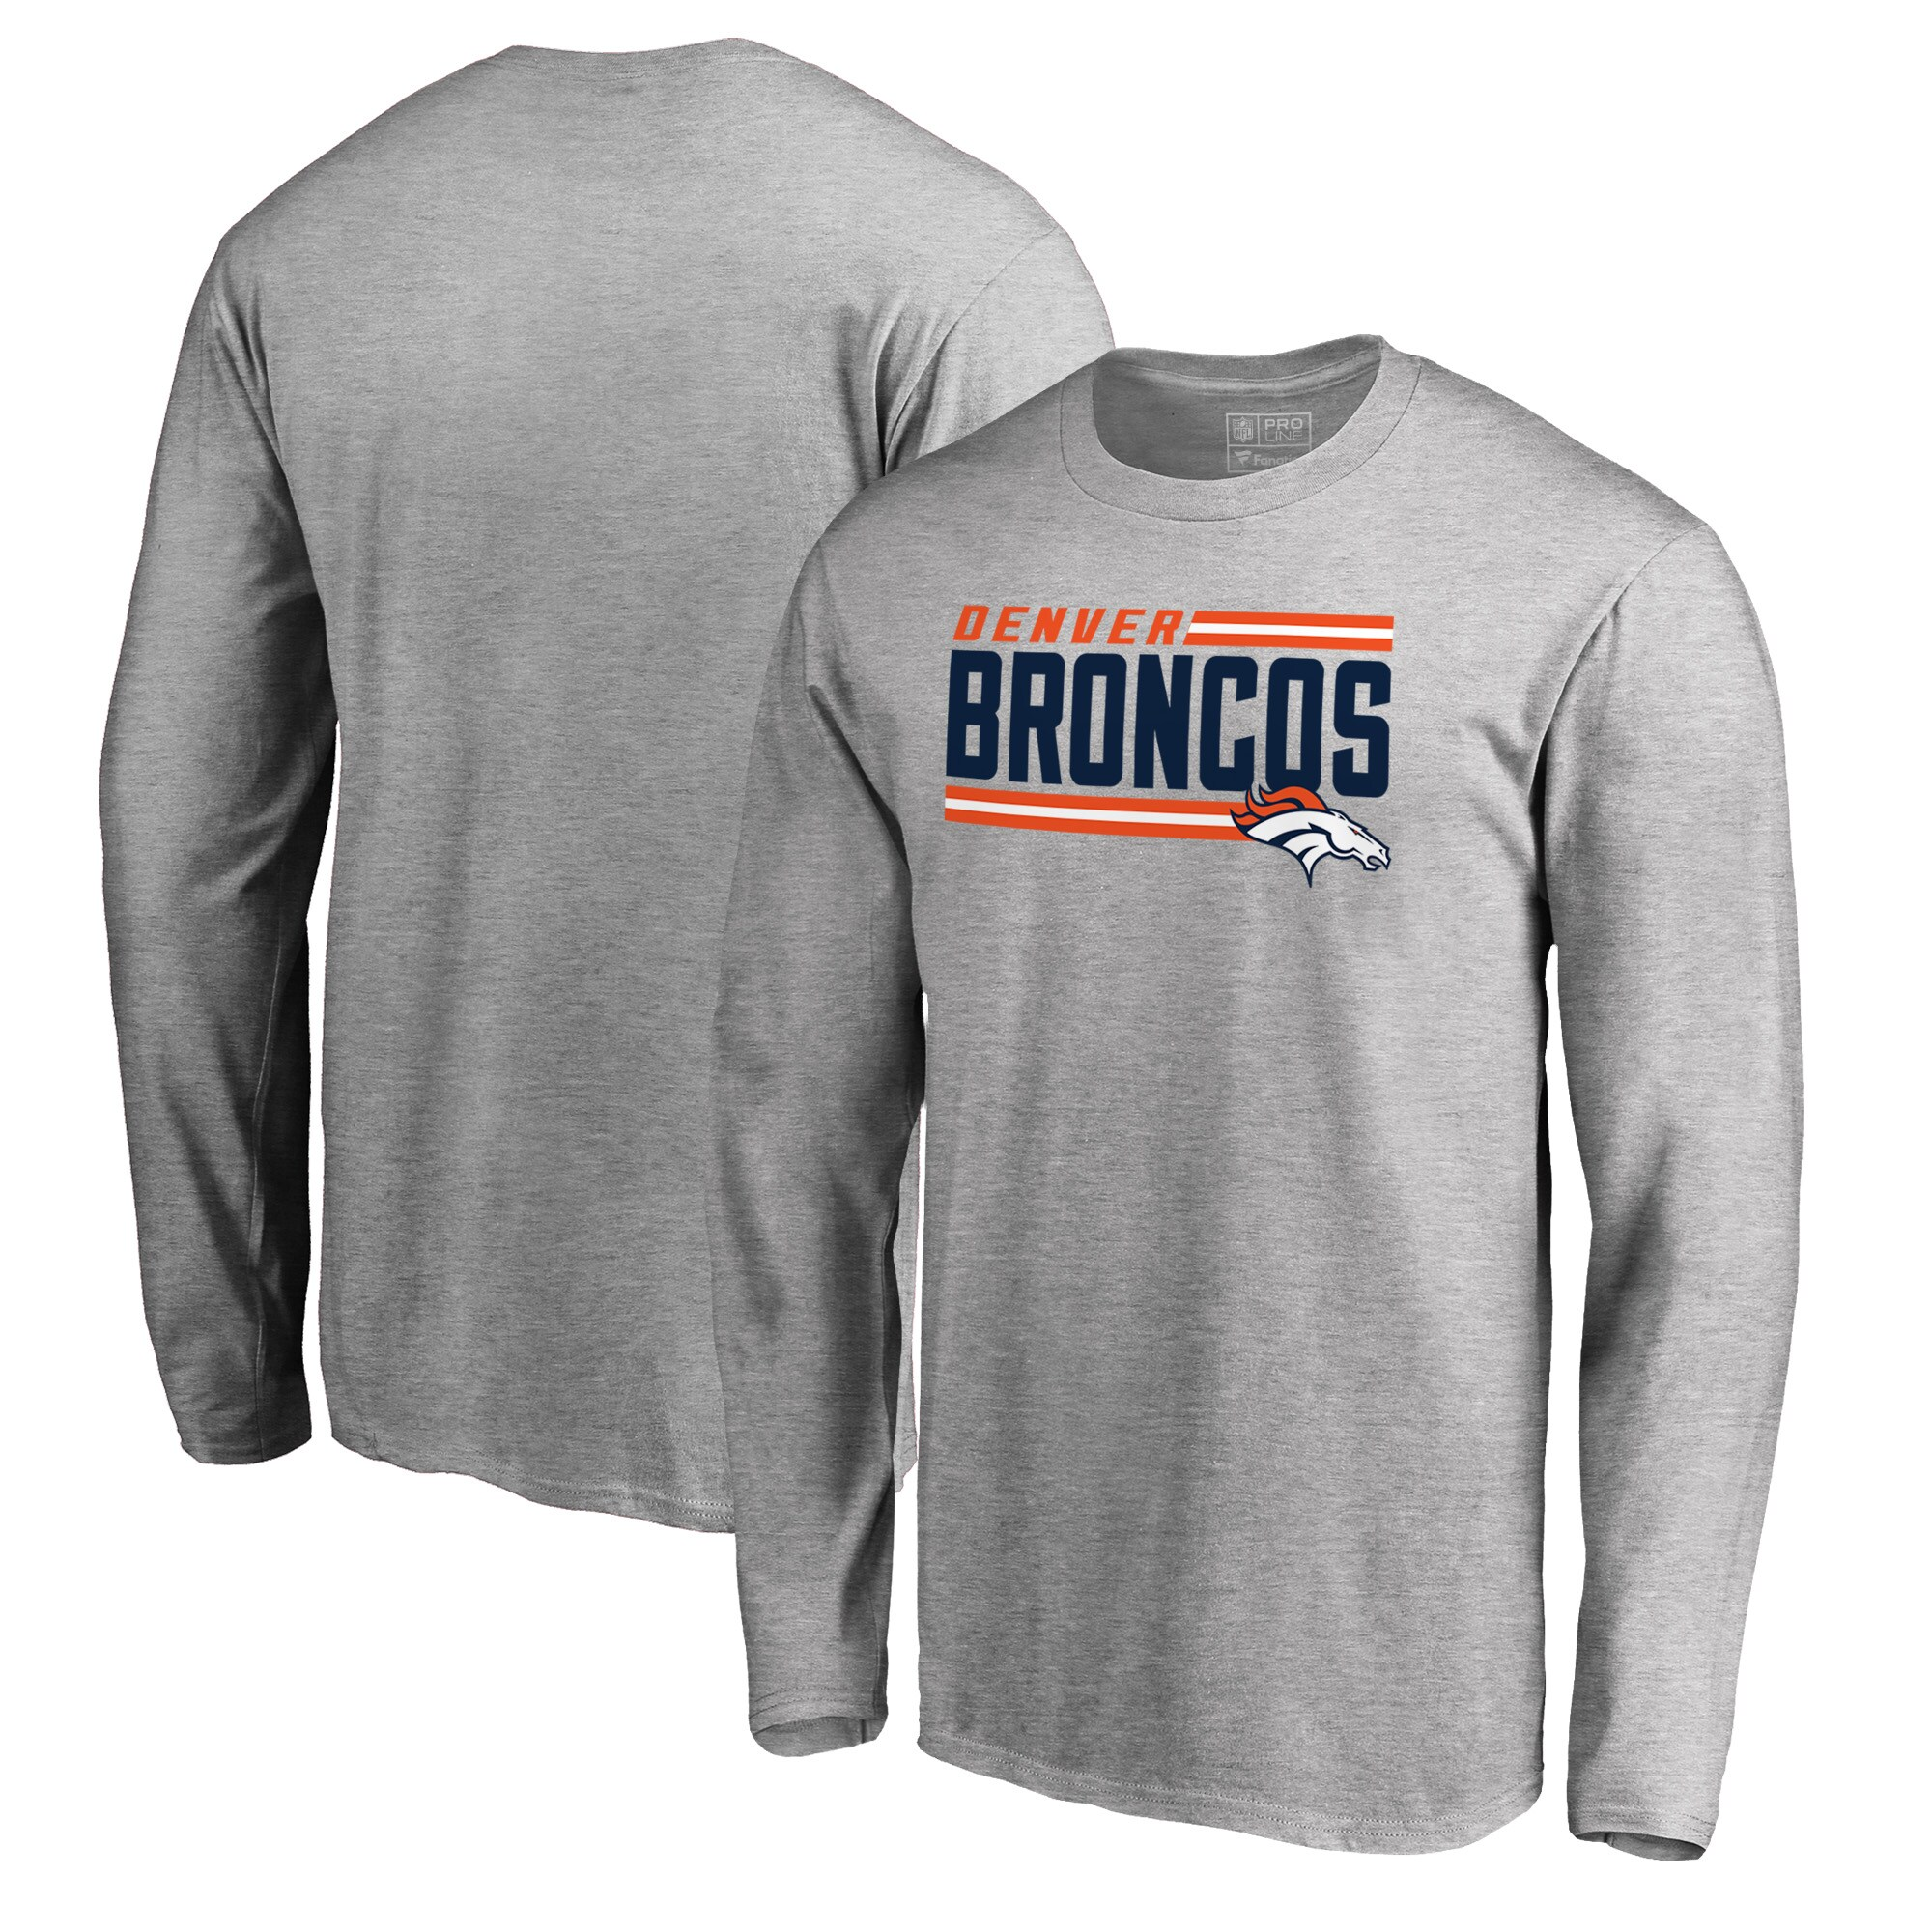 Denver Broncos NFL Pro Line by Fanatics Branded Iconic Collection Big and Tall On Side Stripe Long Sleeve T-Shirt - Ash